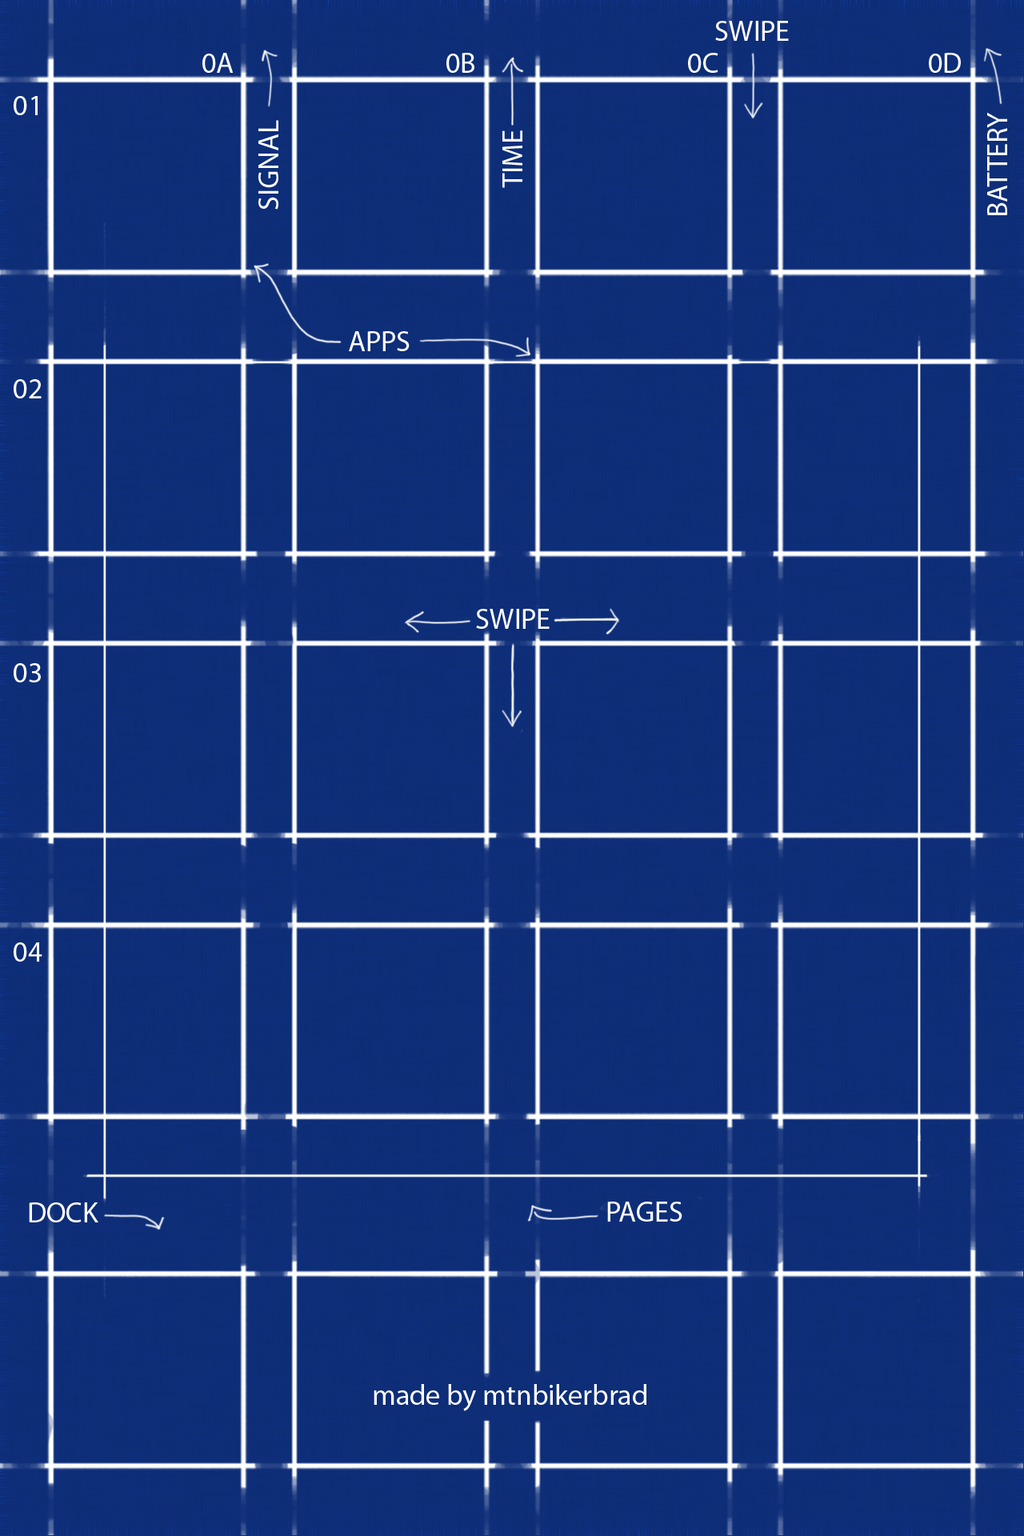 Blueprint for ios7 iphone 4 4s by mtnbikerbrad on deviantart blueprint for ios7 iphone 4 4s by mtnbikerbrad malvernweather Gallery